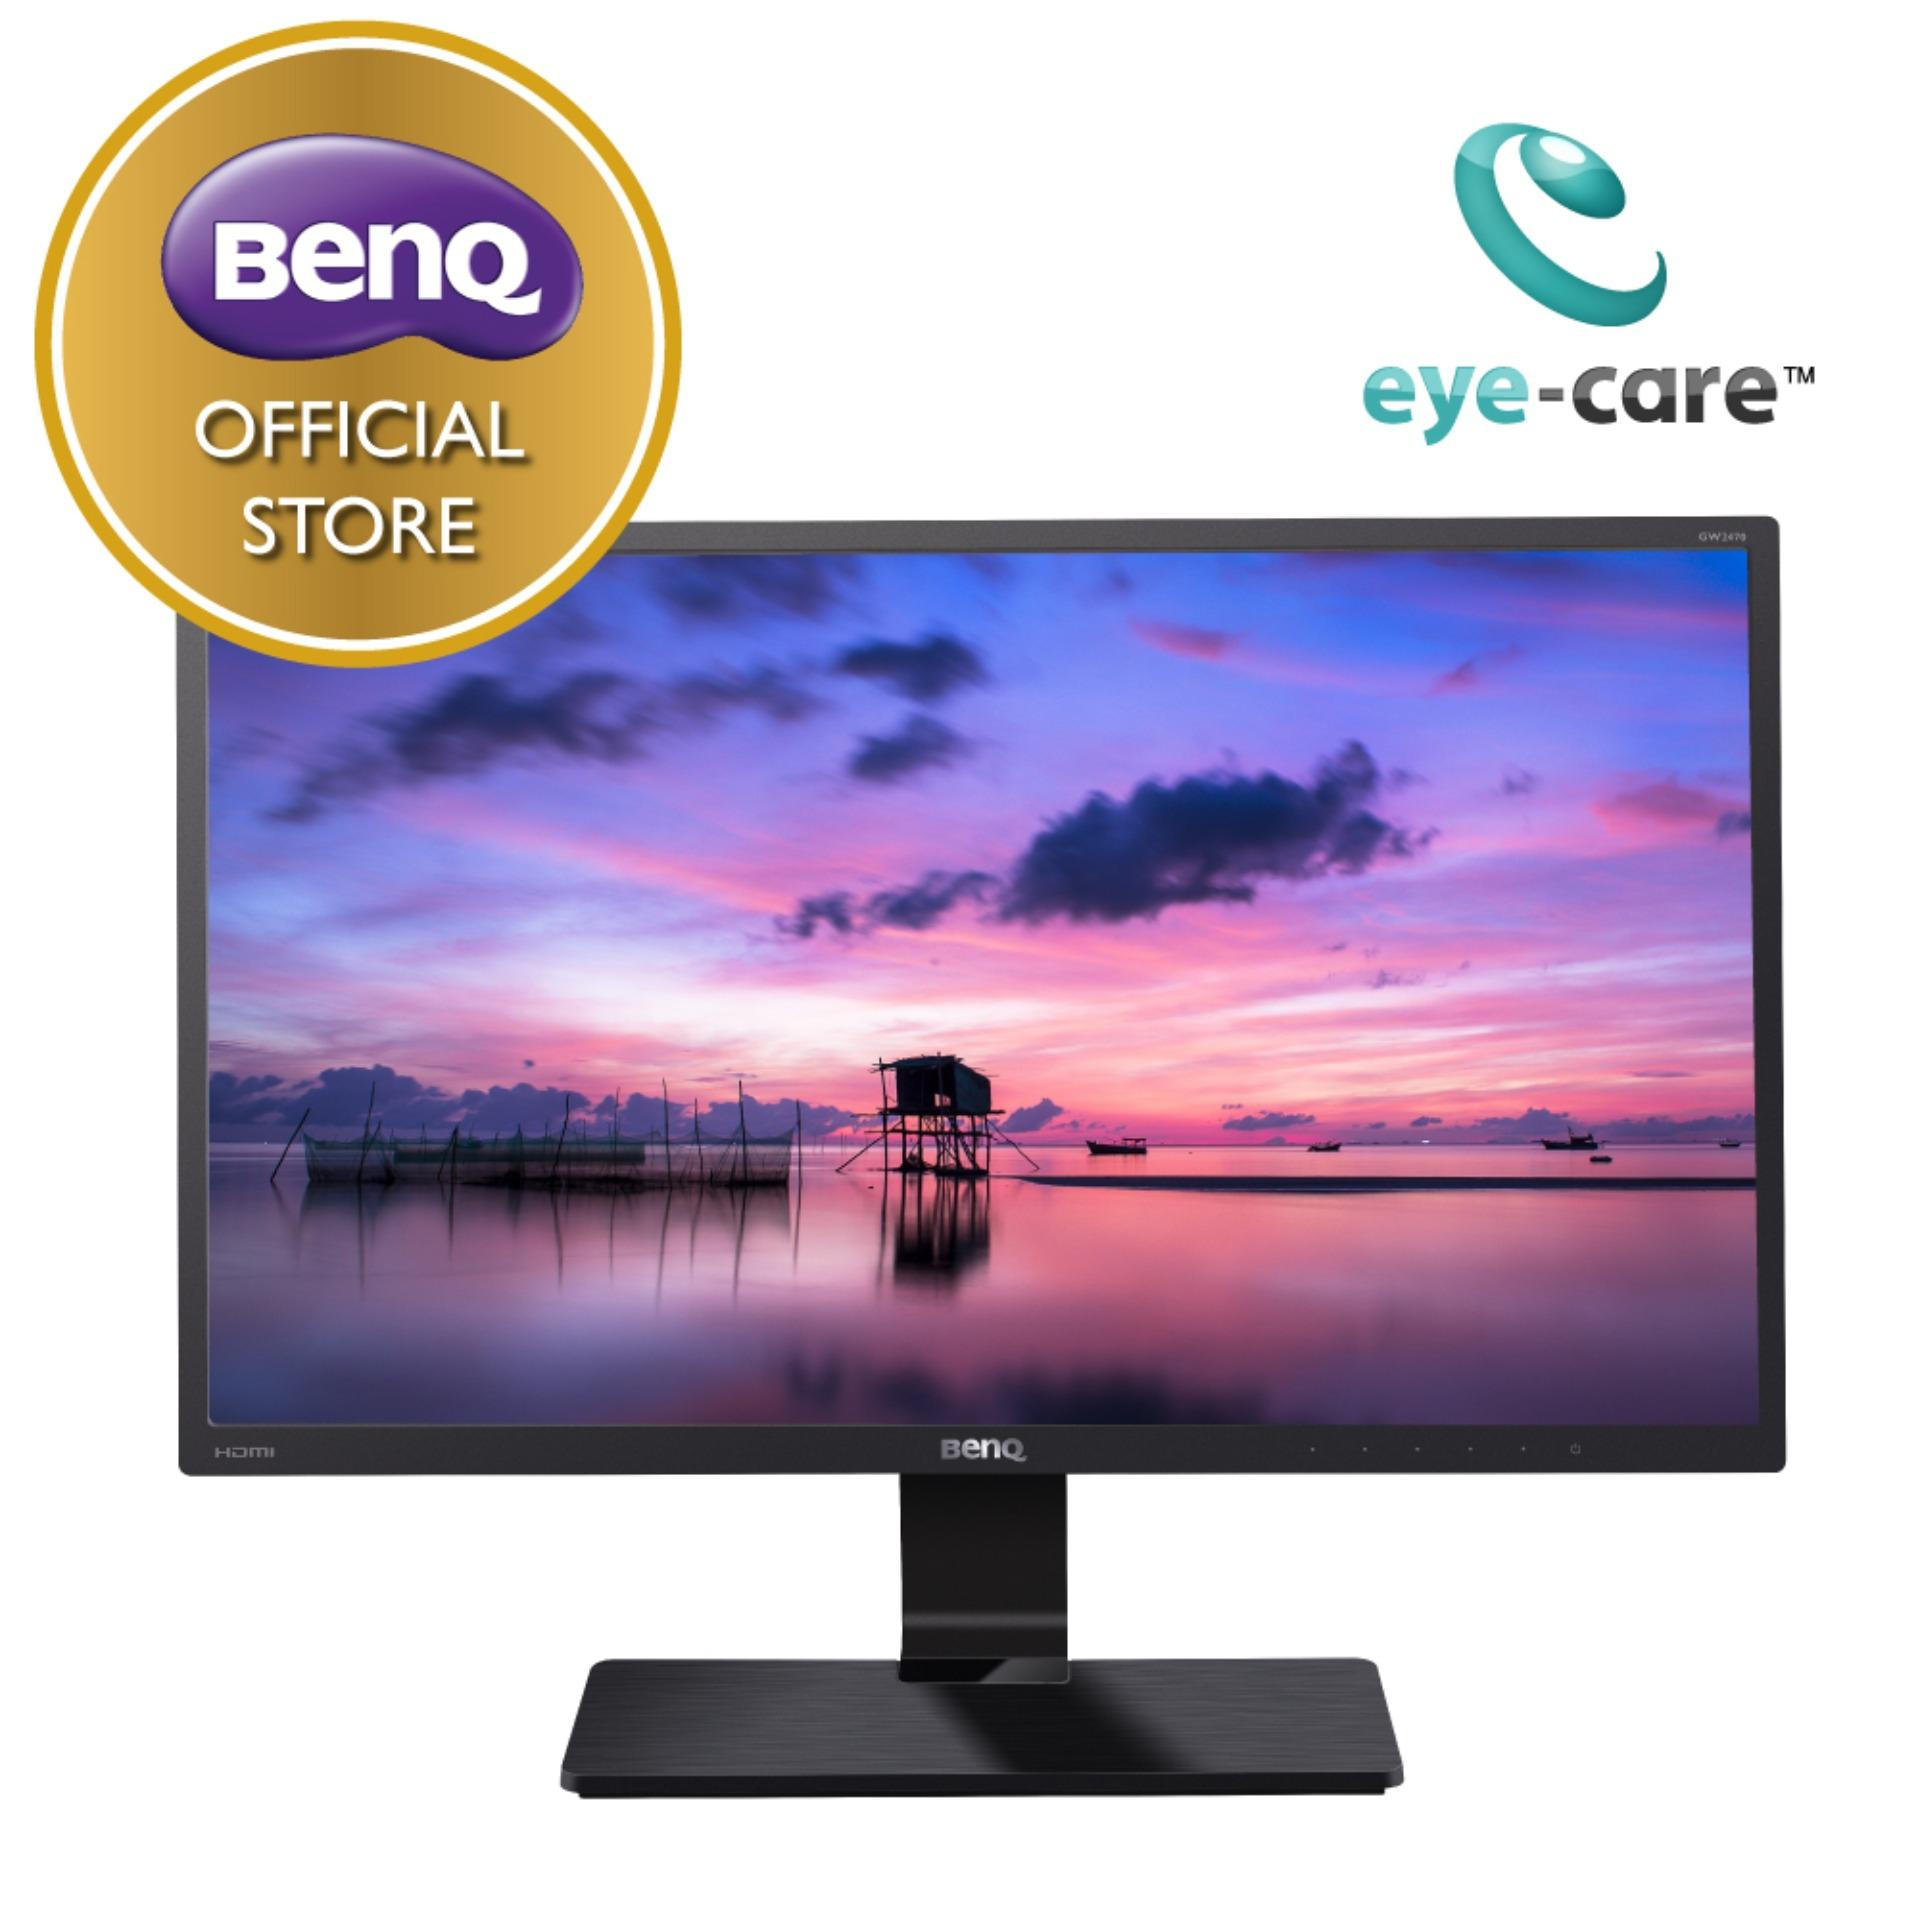 Harga Benq Gw2470H 24 Inch Full Hd Hdmi Va Led Eye Care Monitor Baru Murah